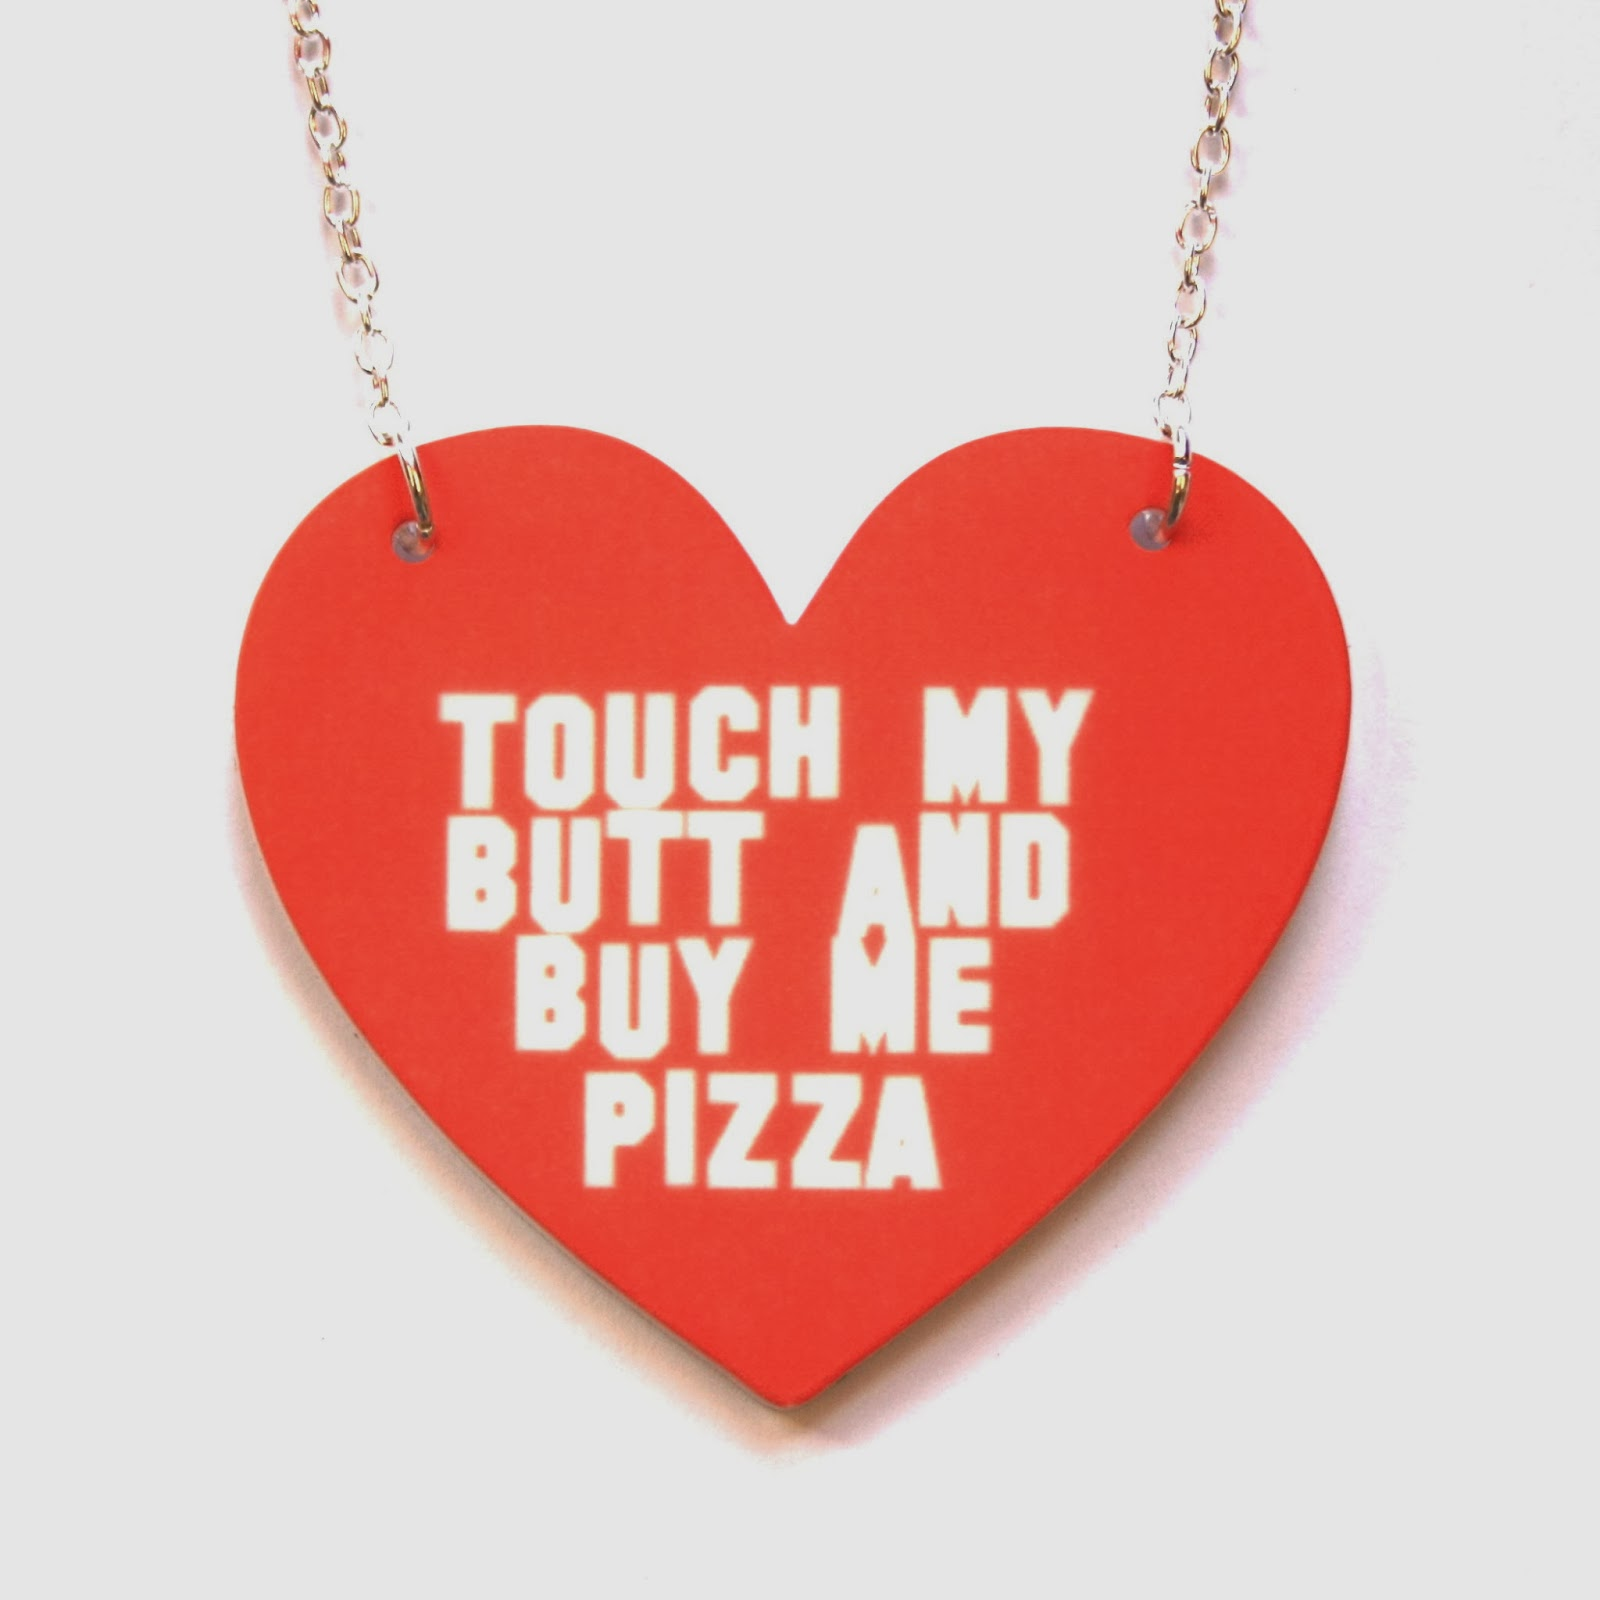 http://www.sourcherry.co.uk/touch-my-butt-necklace/